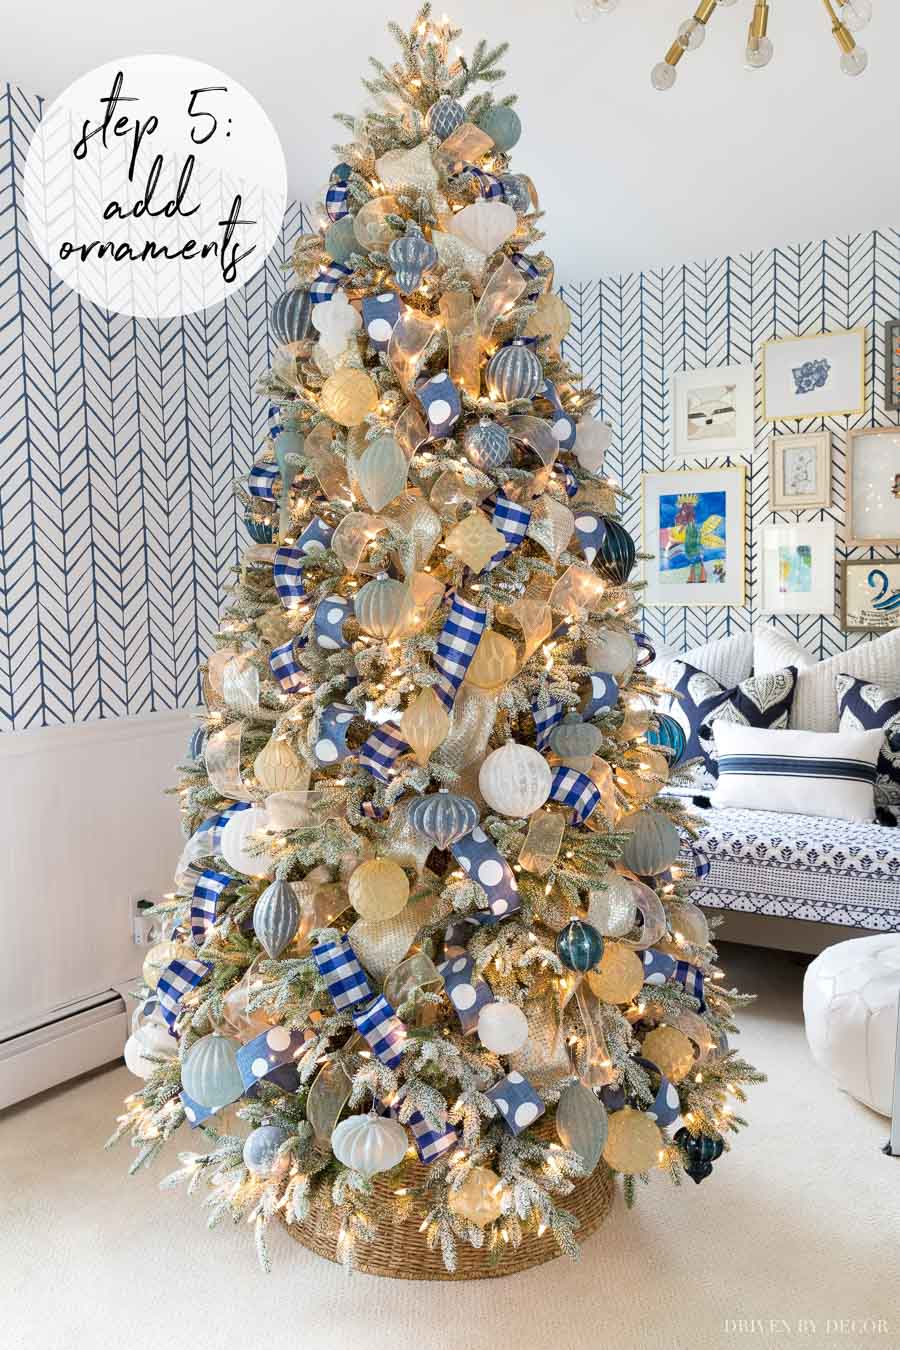 Loving this tutorial on how to decorate a Christmas tree! Gorgeous ornaments!